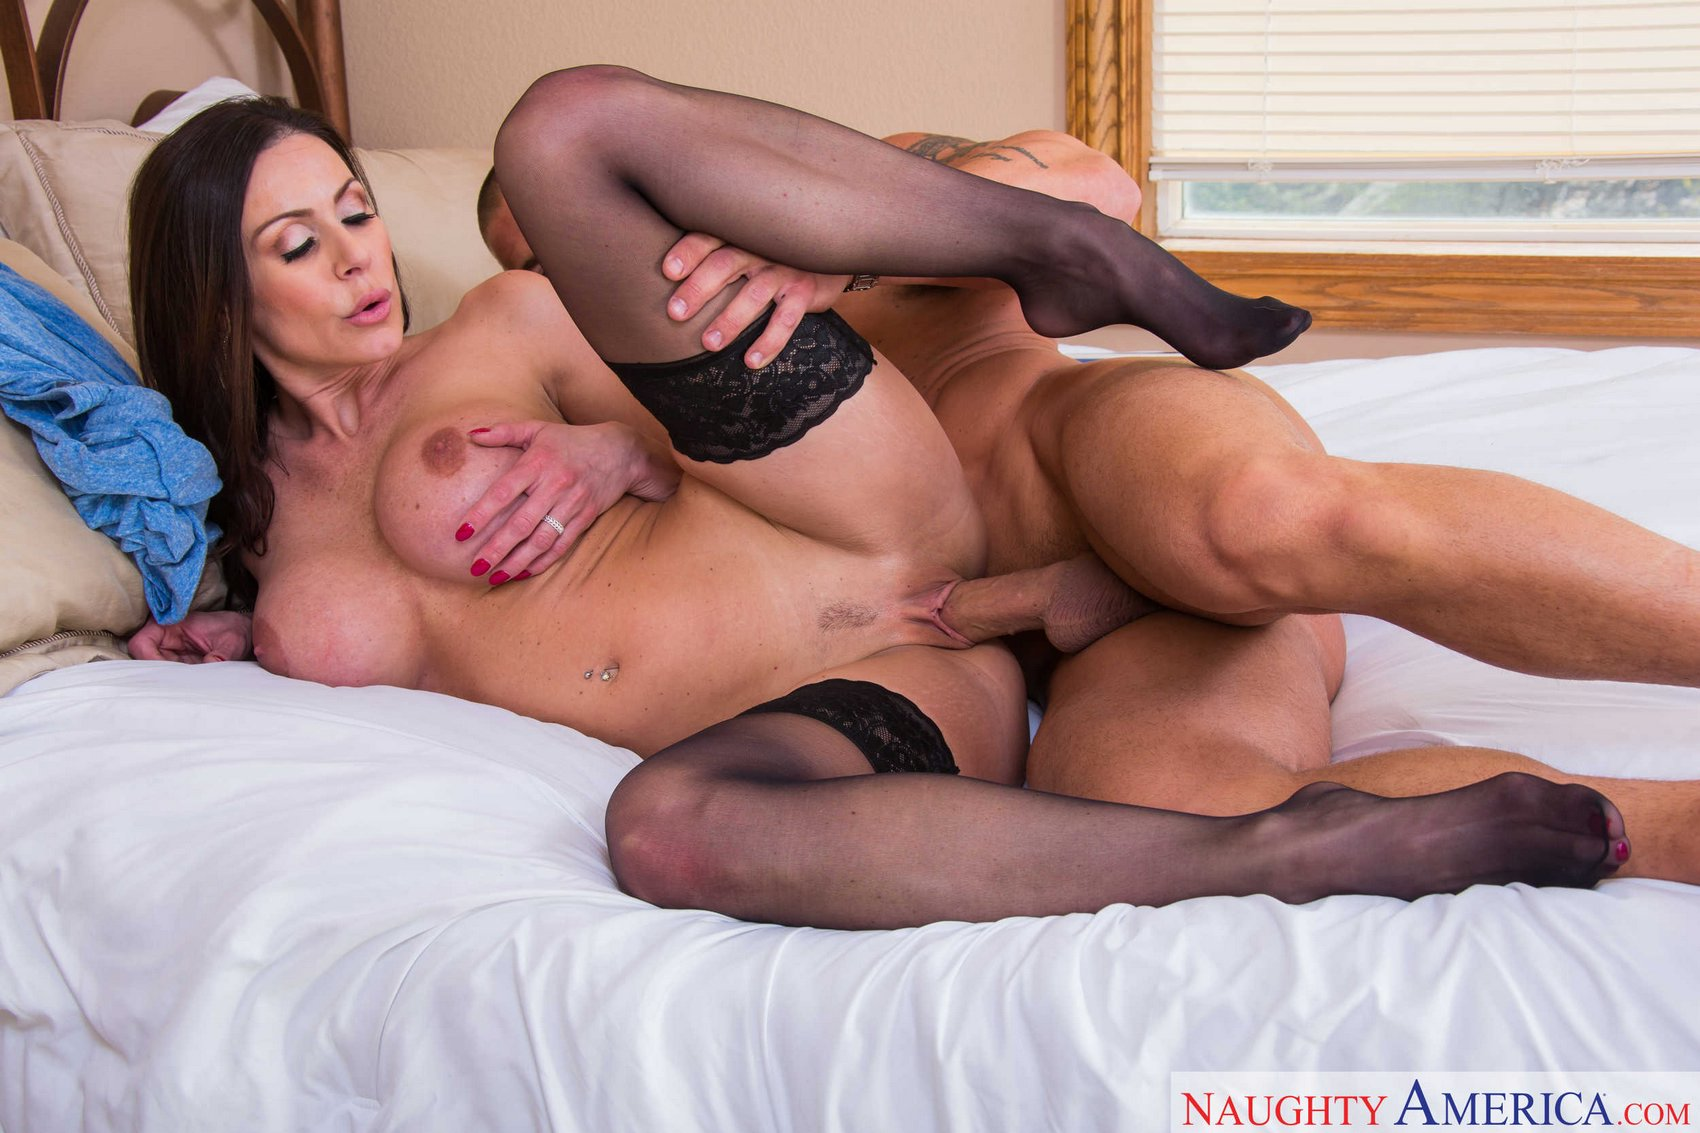 You have Kendra lust milf sex the same